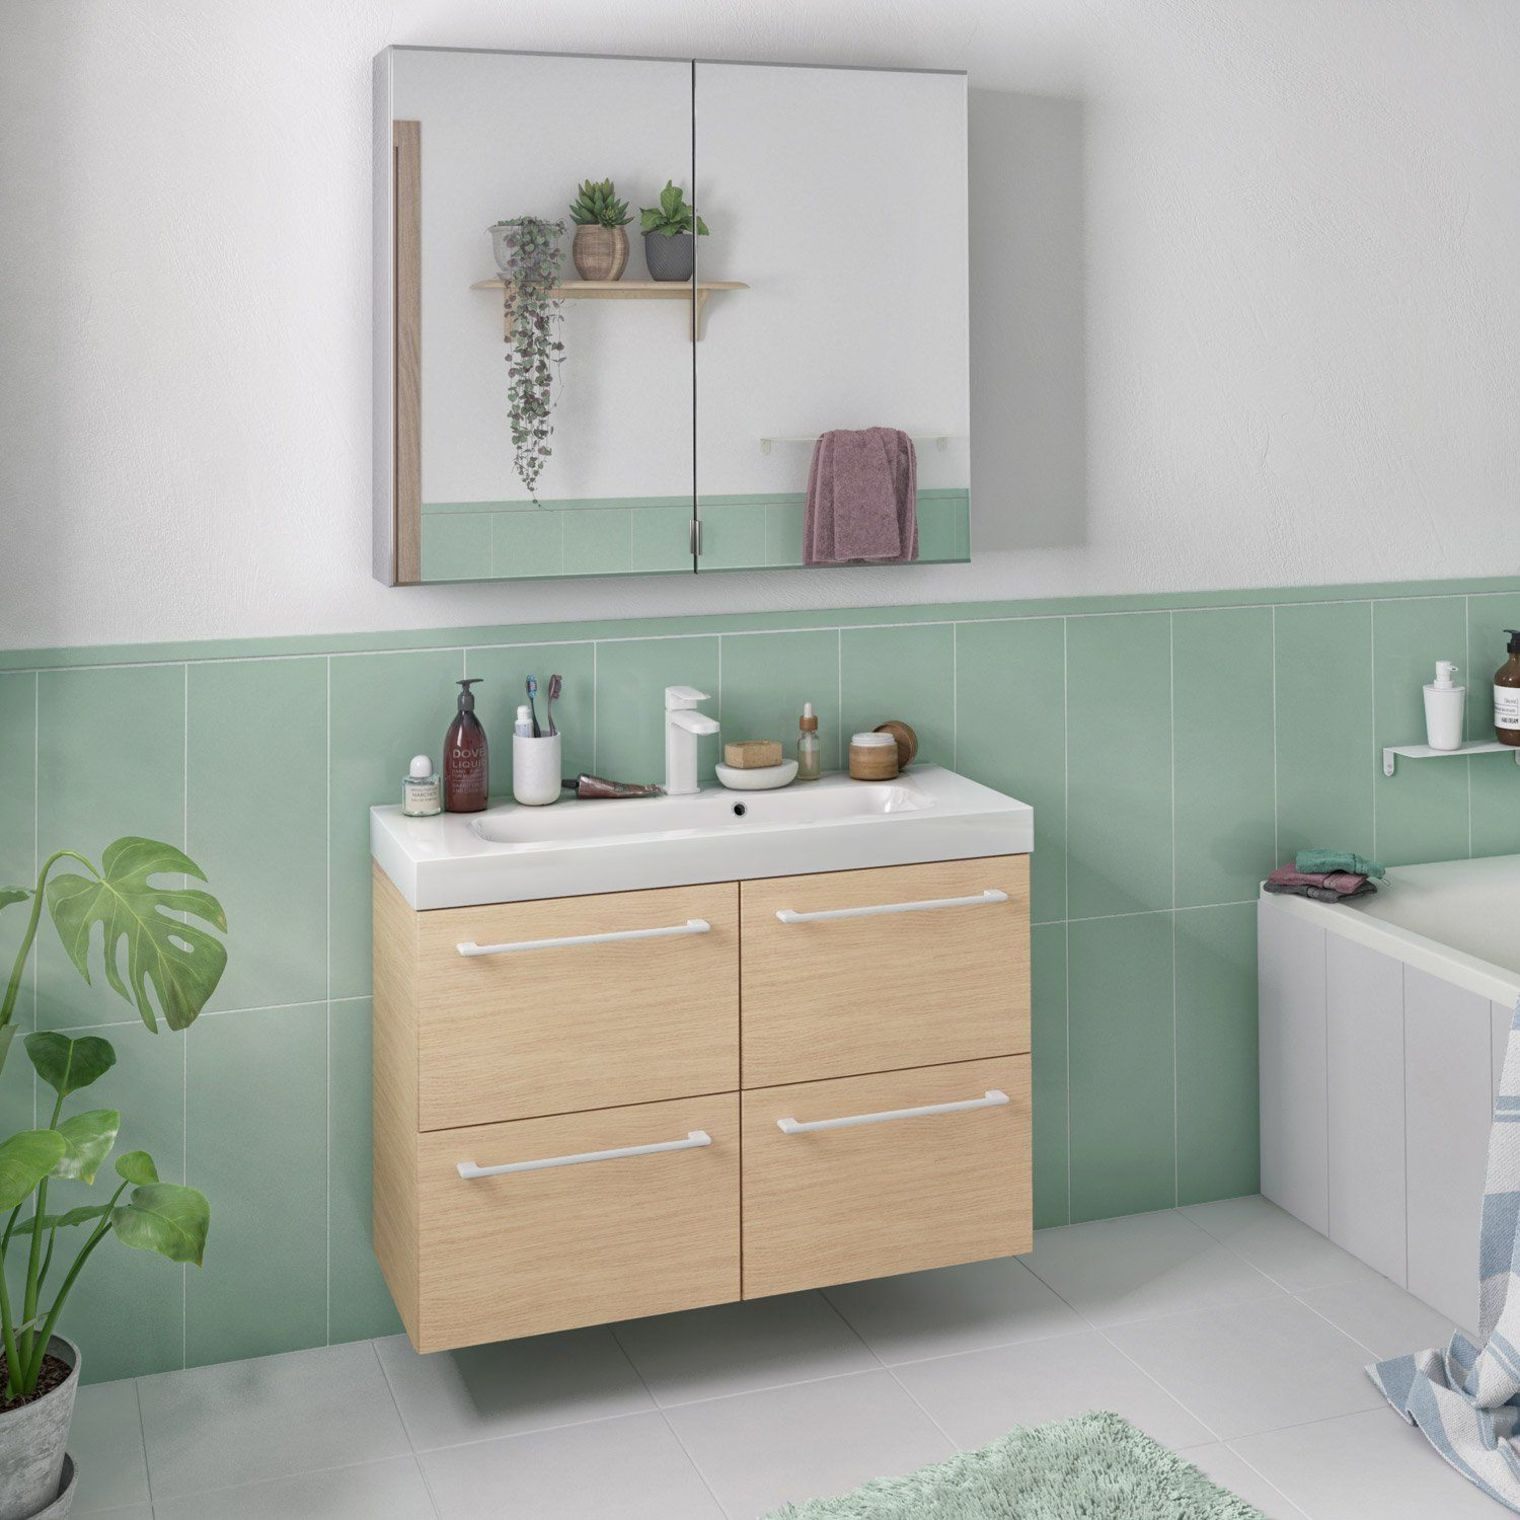 Meuble De Salle De Bains Remix L 91 Chene Naturel Simple Vasque 4 Tiroirs H 58 X L 91 X L Creative Bathroom Design Bathroom Design Scandinavian Bathroom